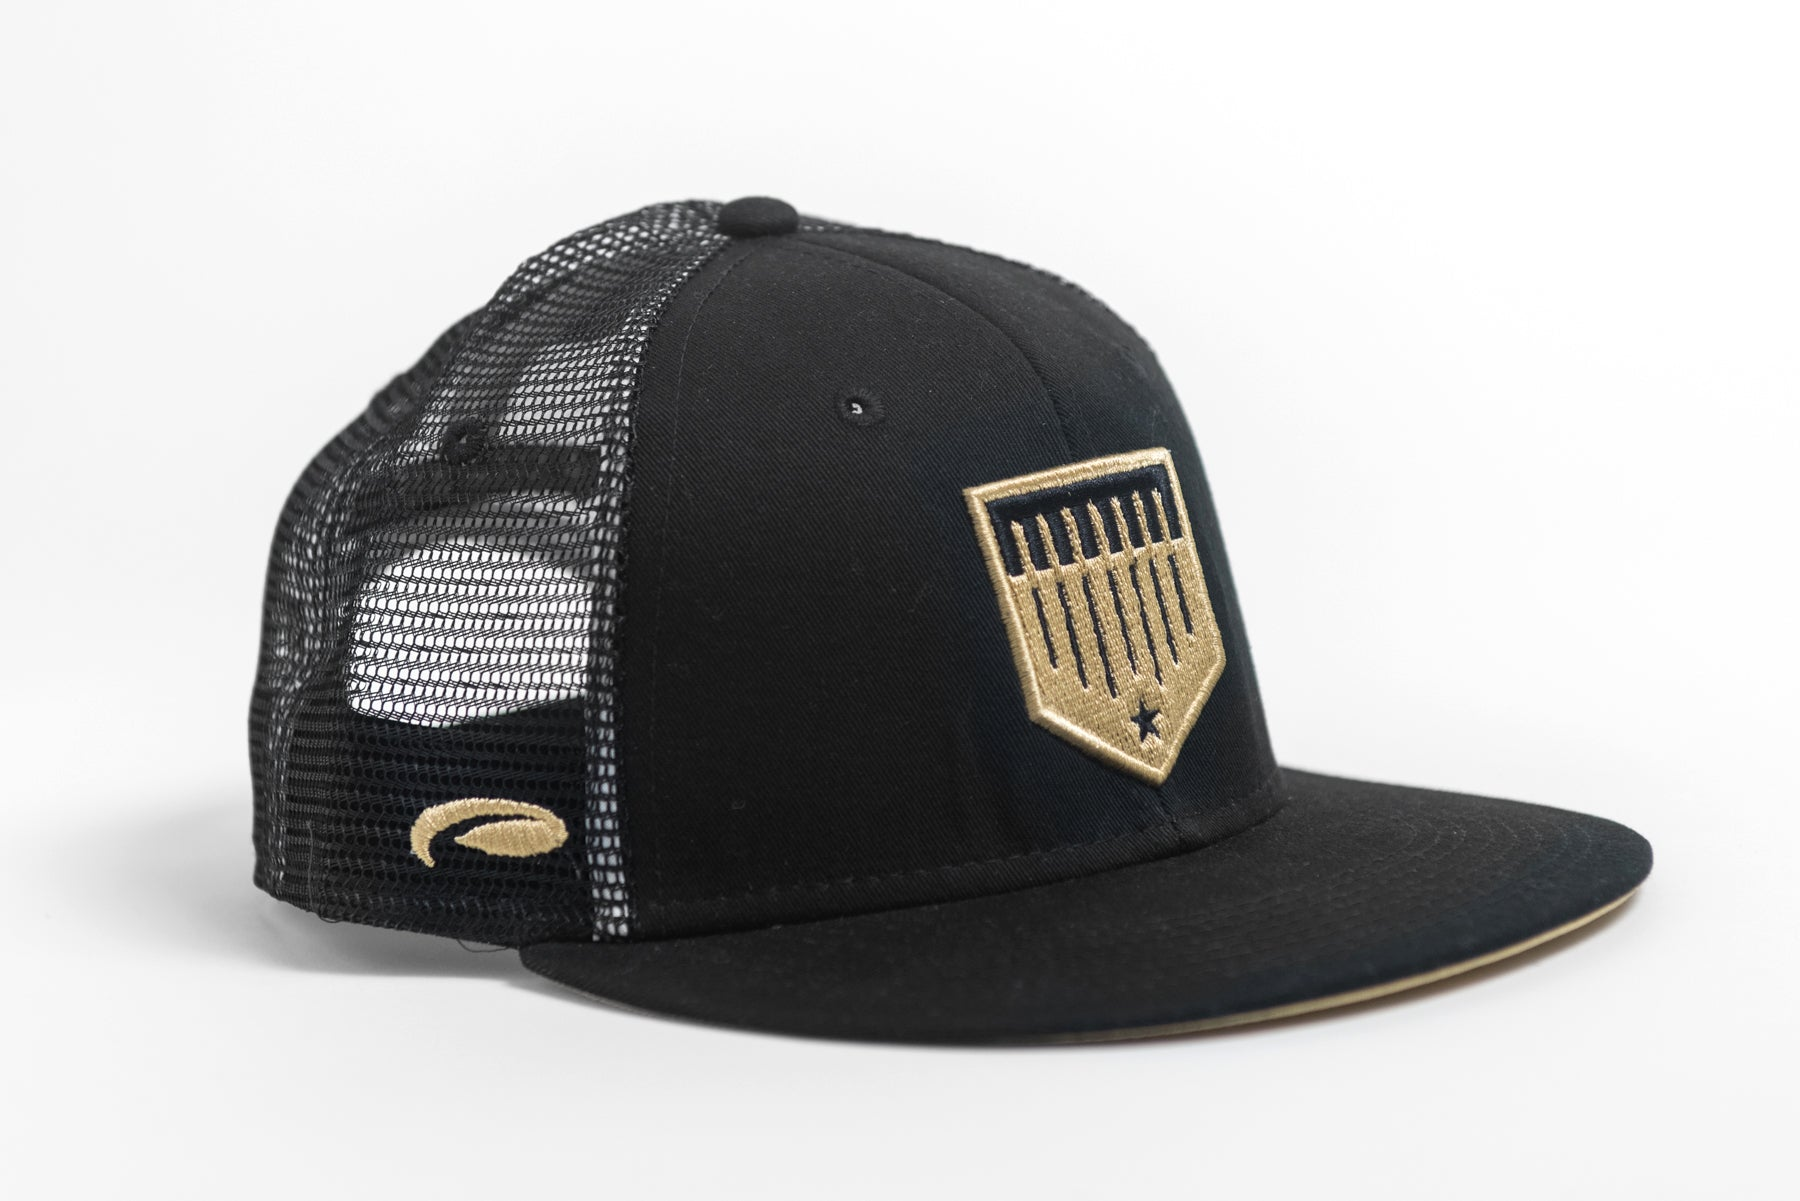 black and gold mesh trucker hat image 1